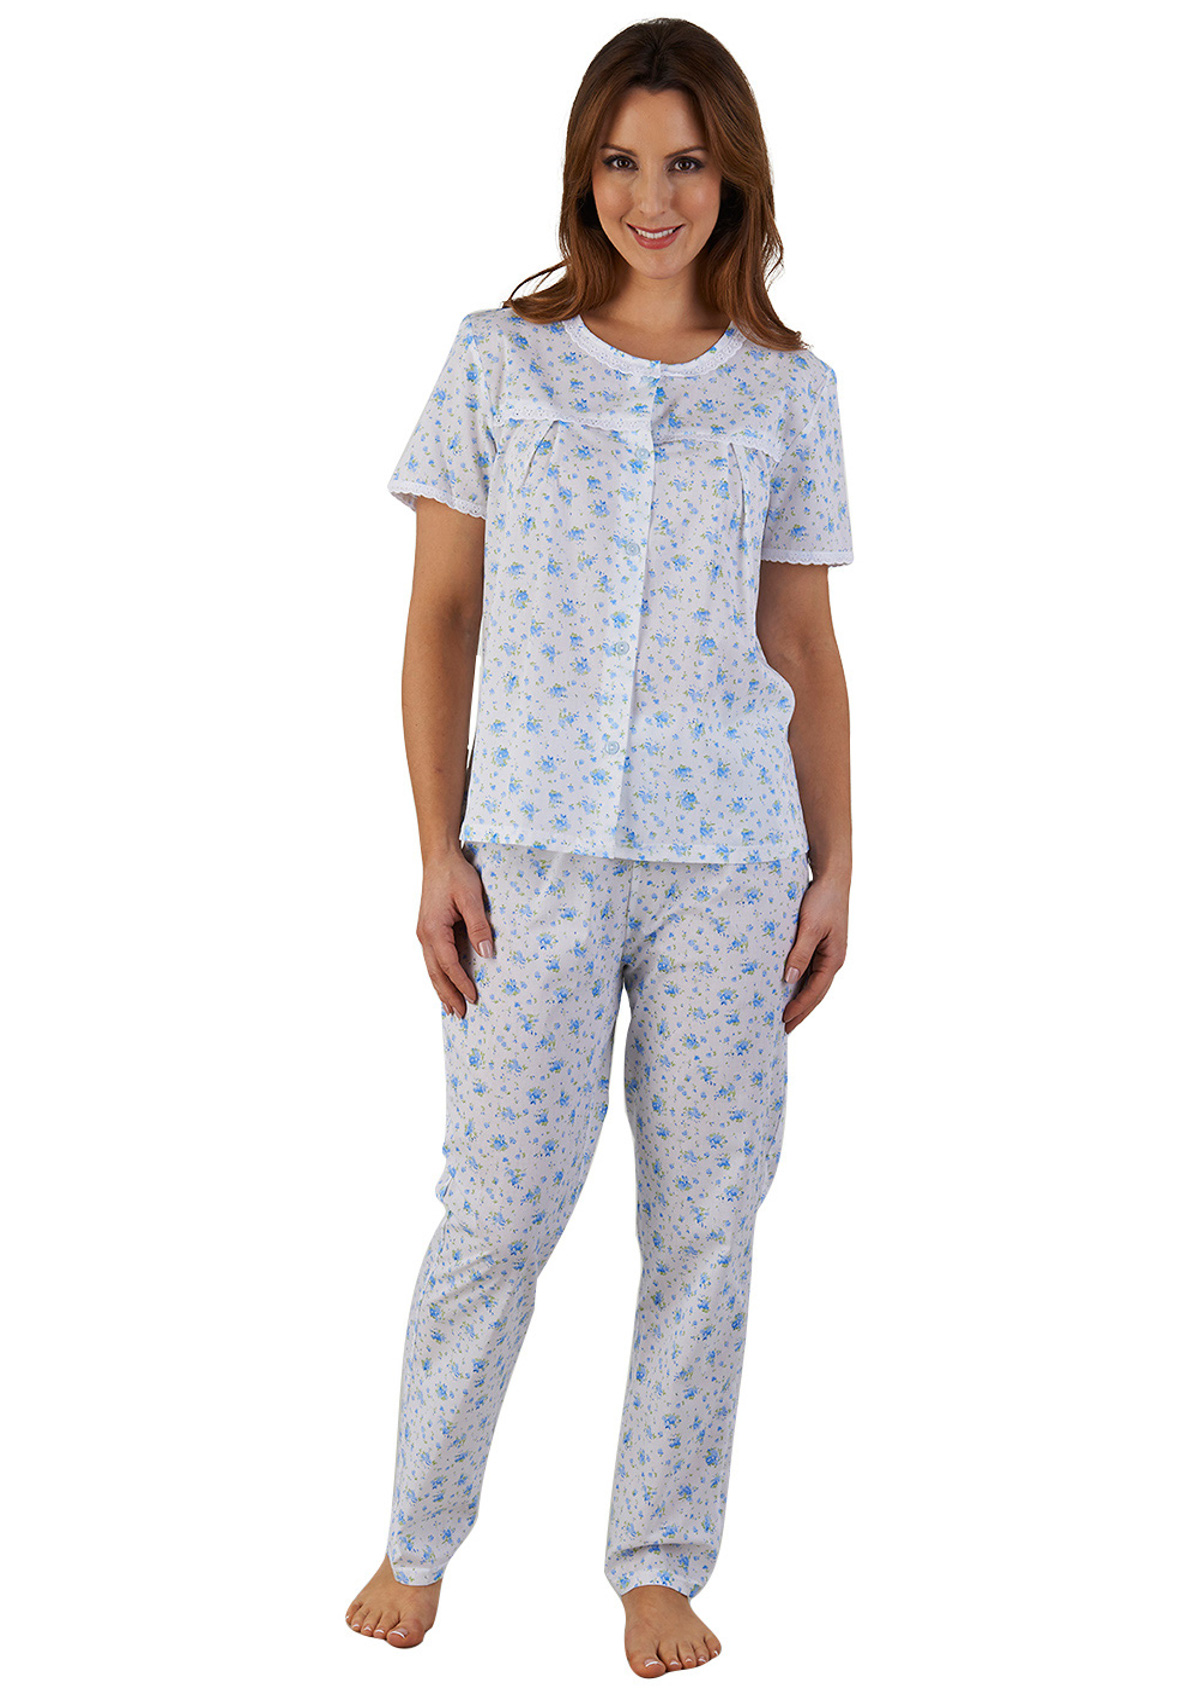 Pajamas should be comfortable and fun to lounge around in. These are the best men's pajamas you can buy.